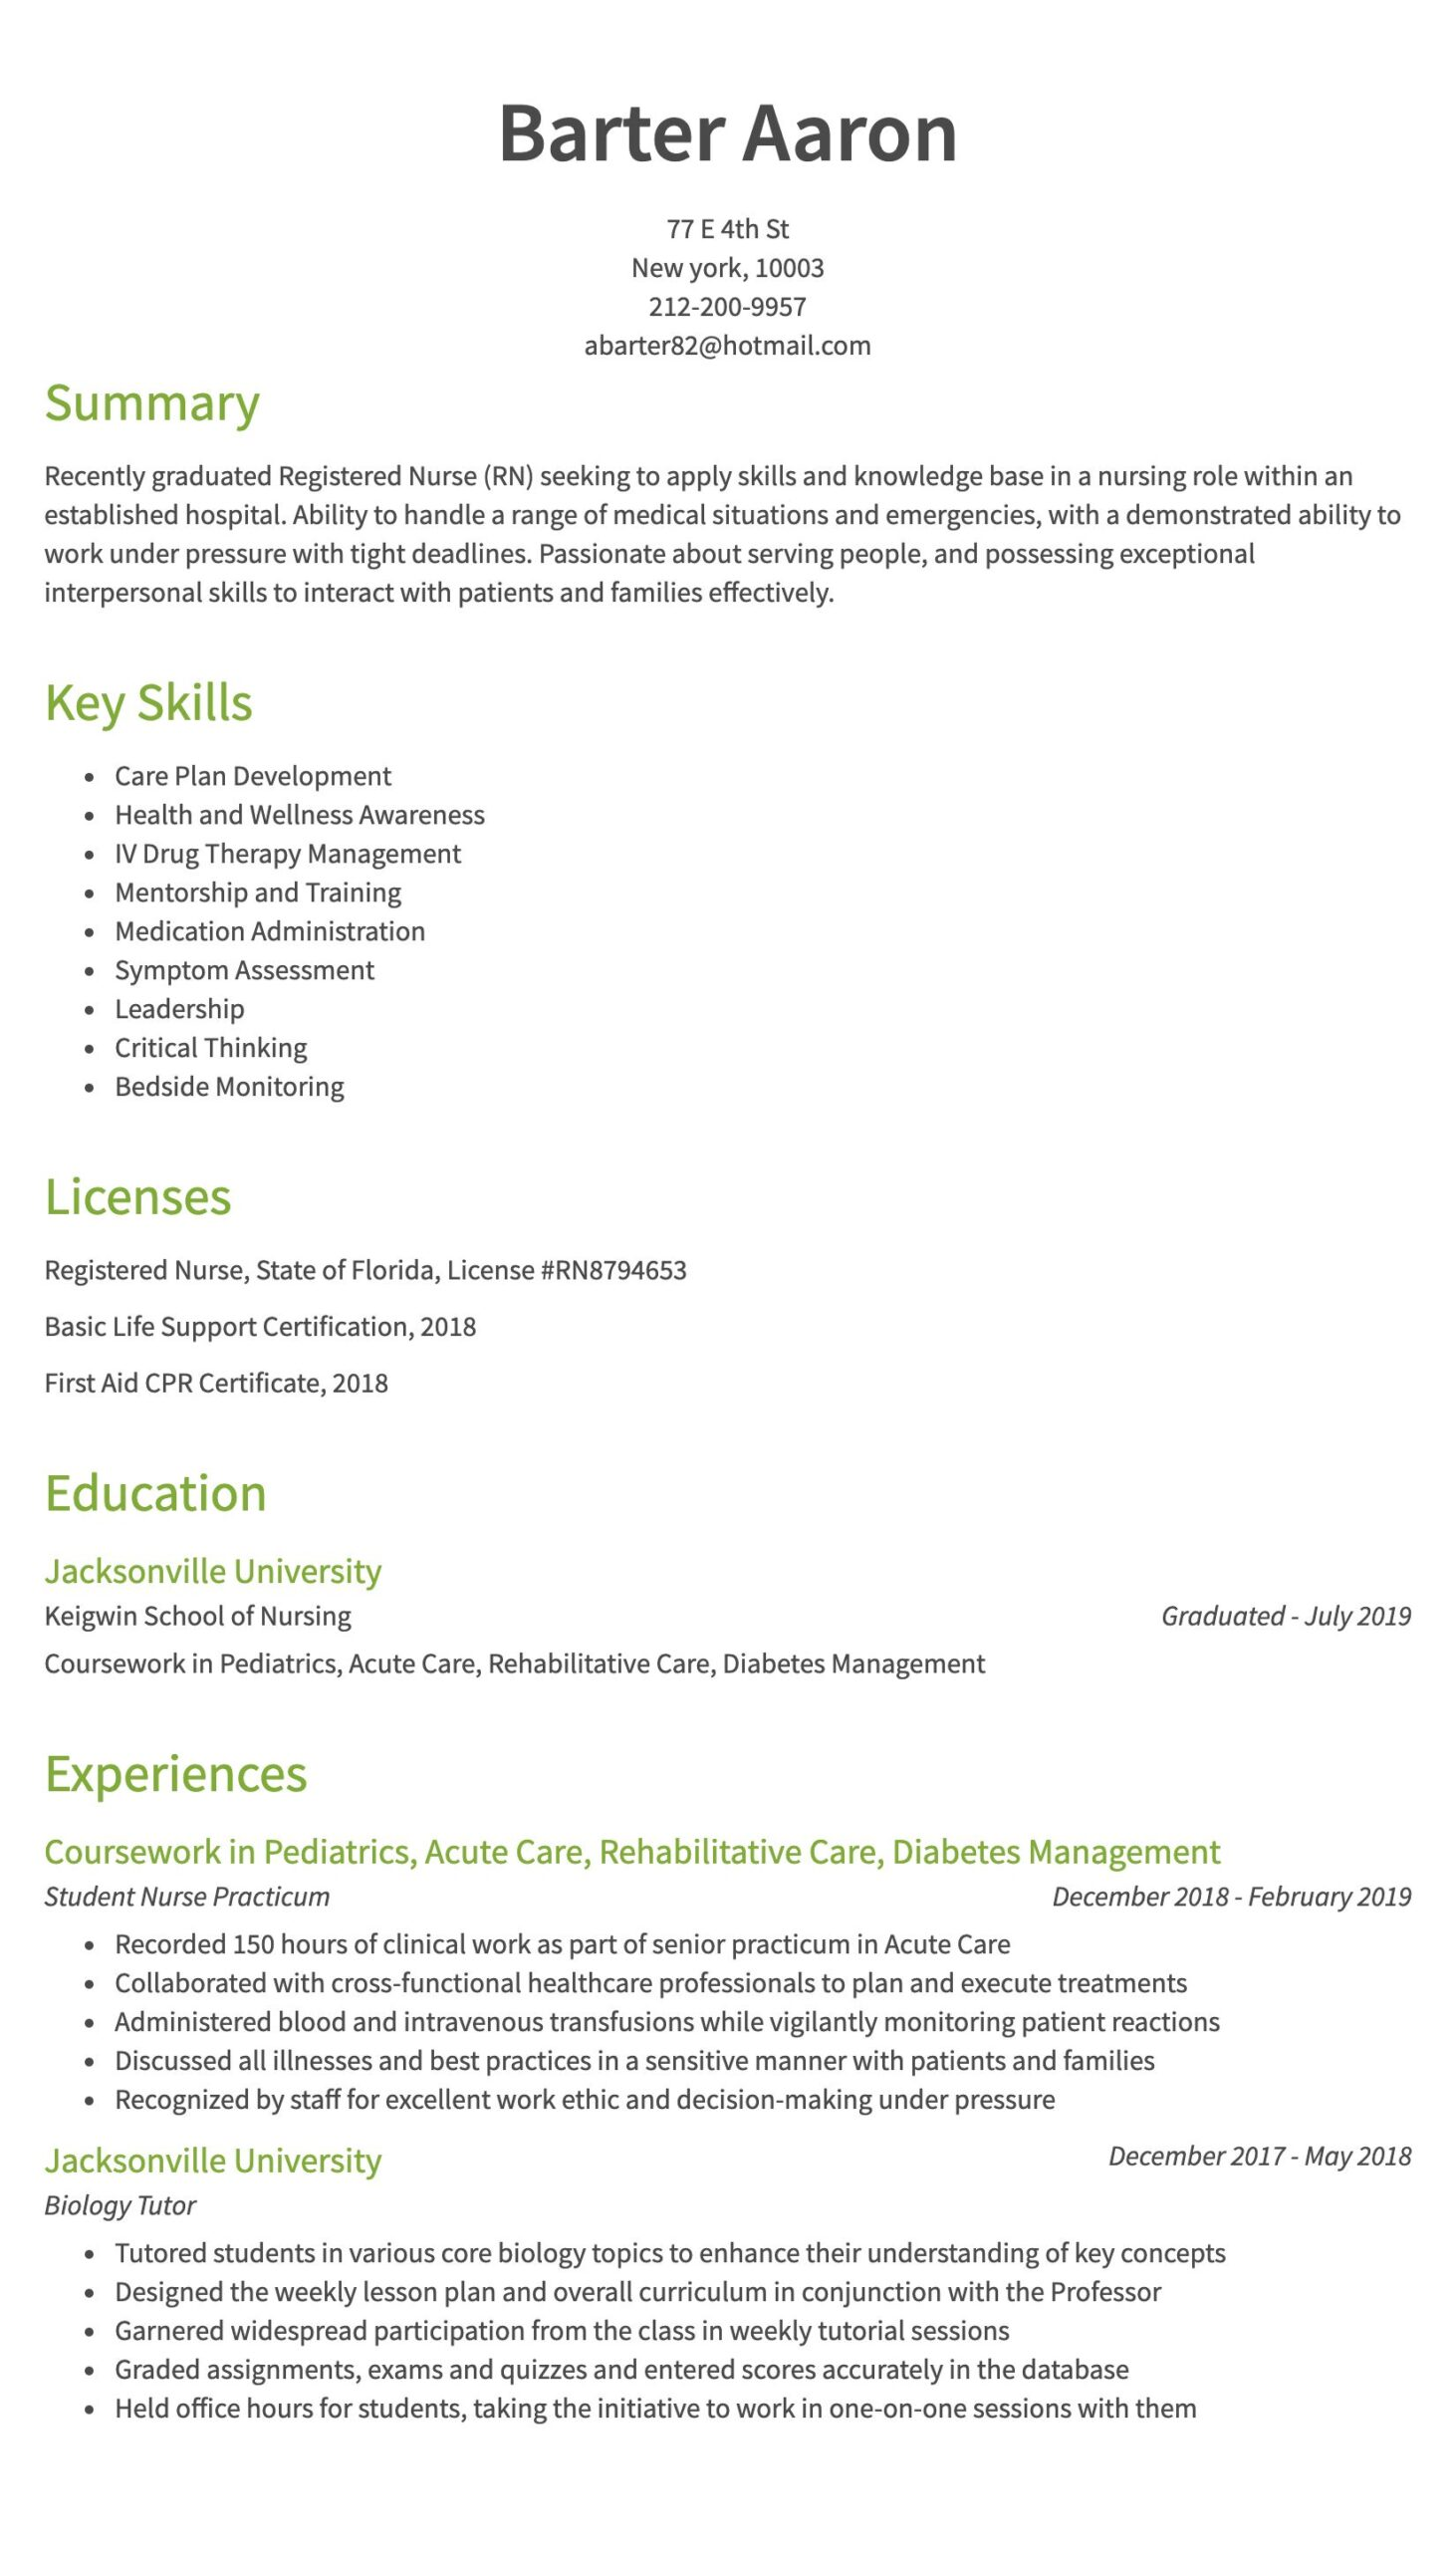 nursing resume examples samples written by rn managers new graduate nurse years of exp Resume New Graduate Nurse Resume Examples